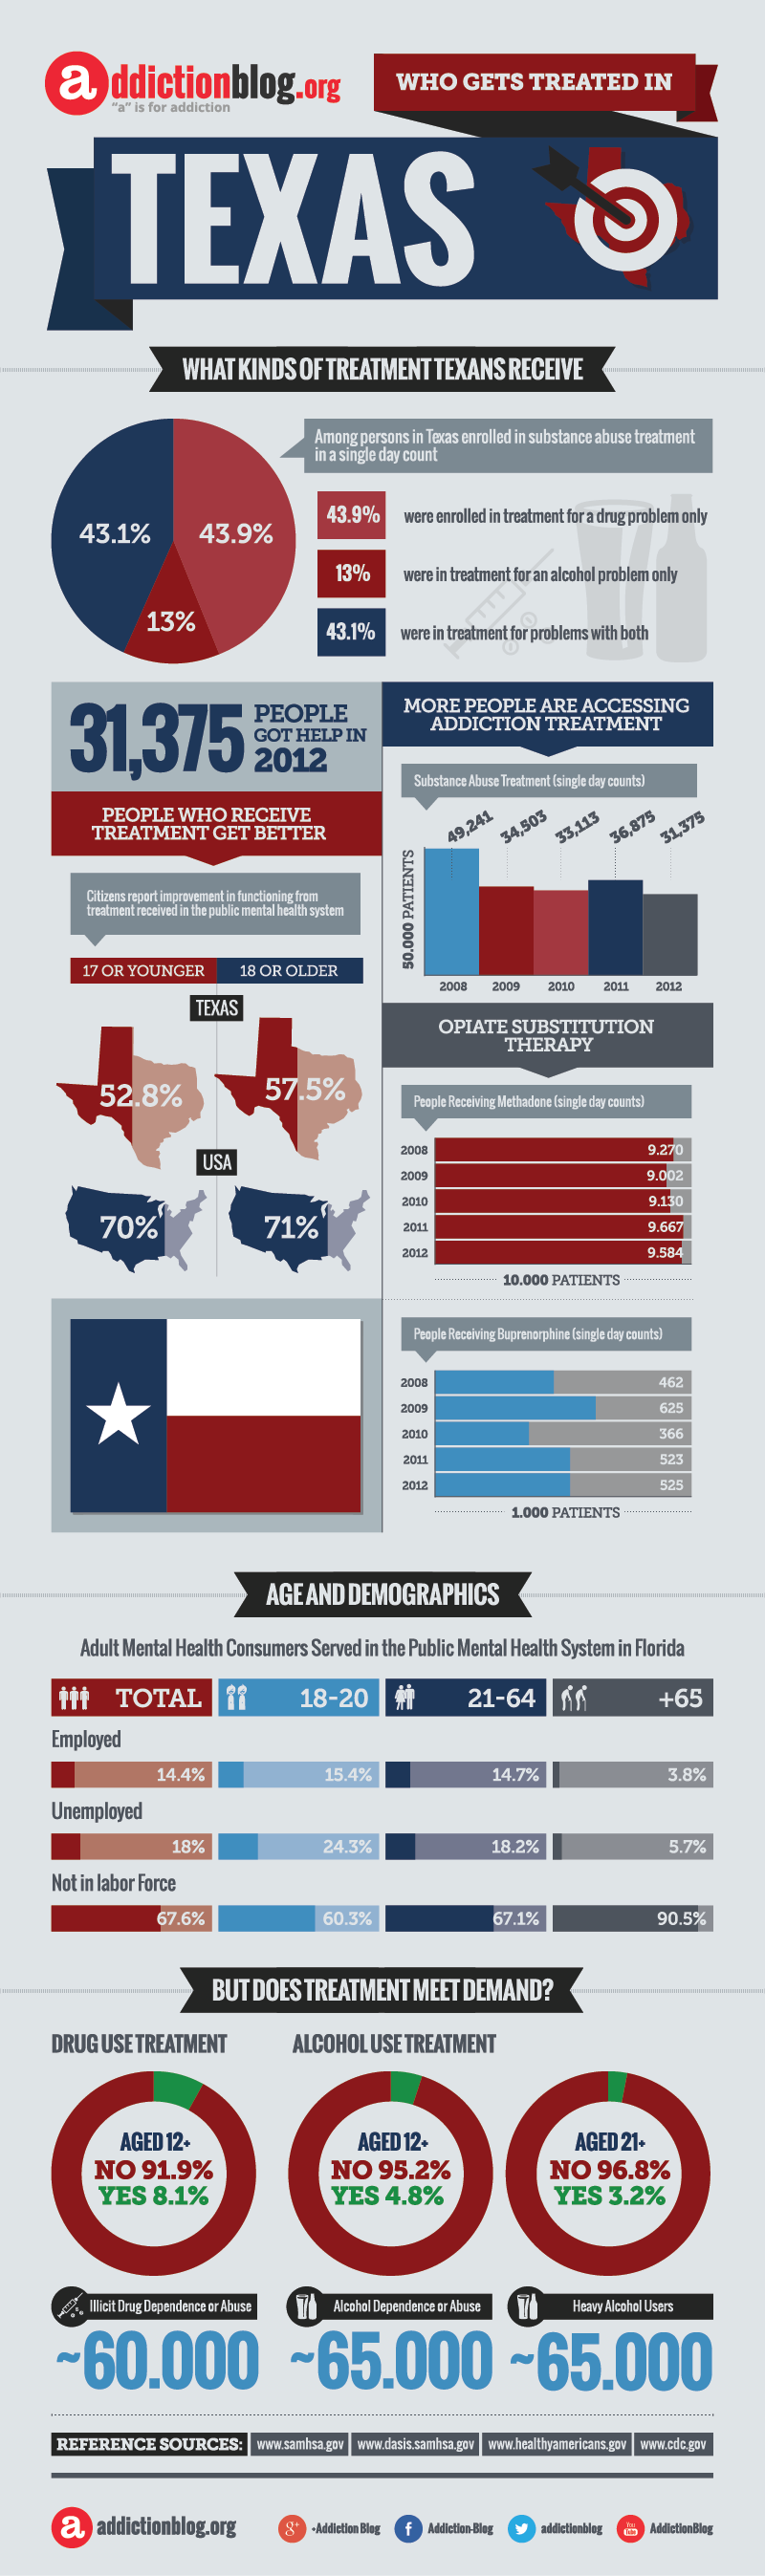 Texas rehab centers: Who's getting treated? (INFOGRAPHIC)